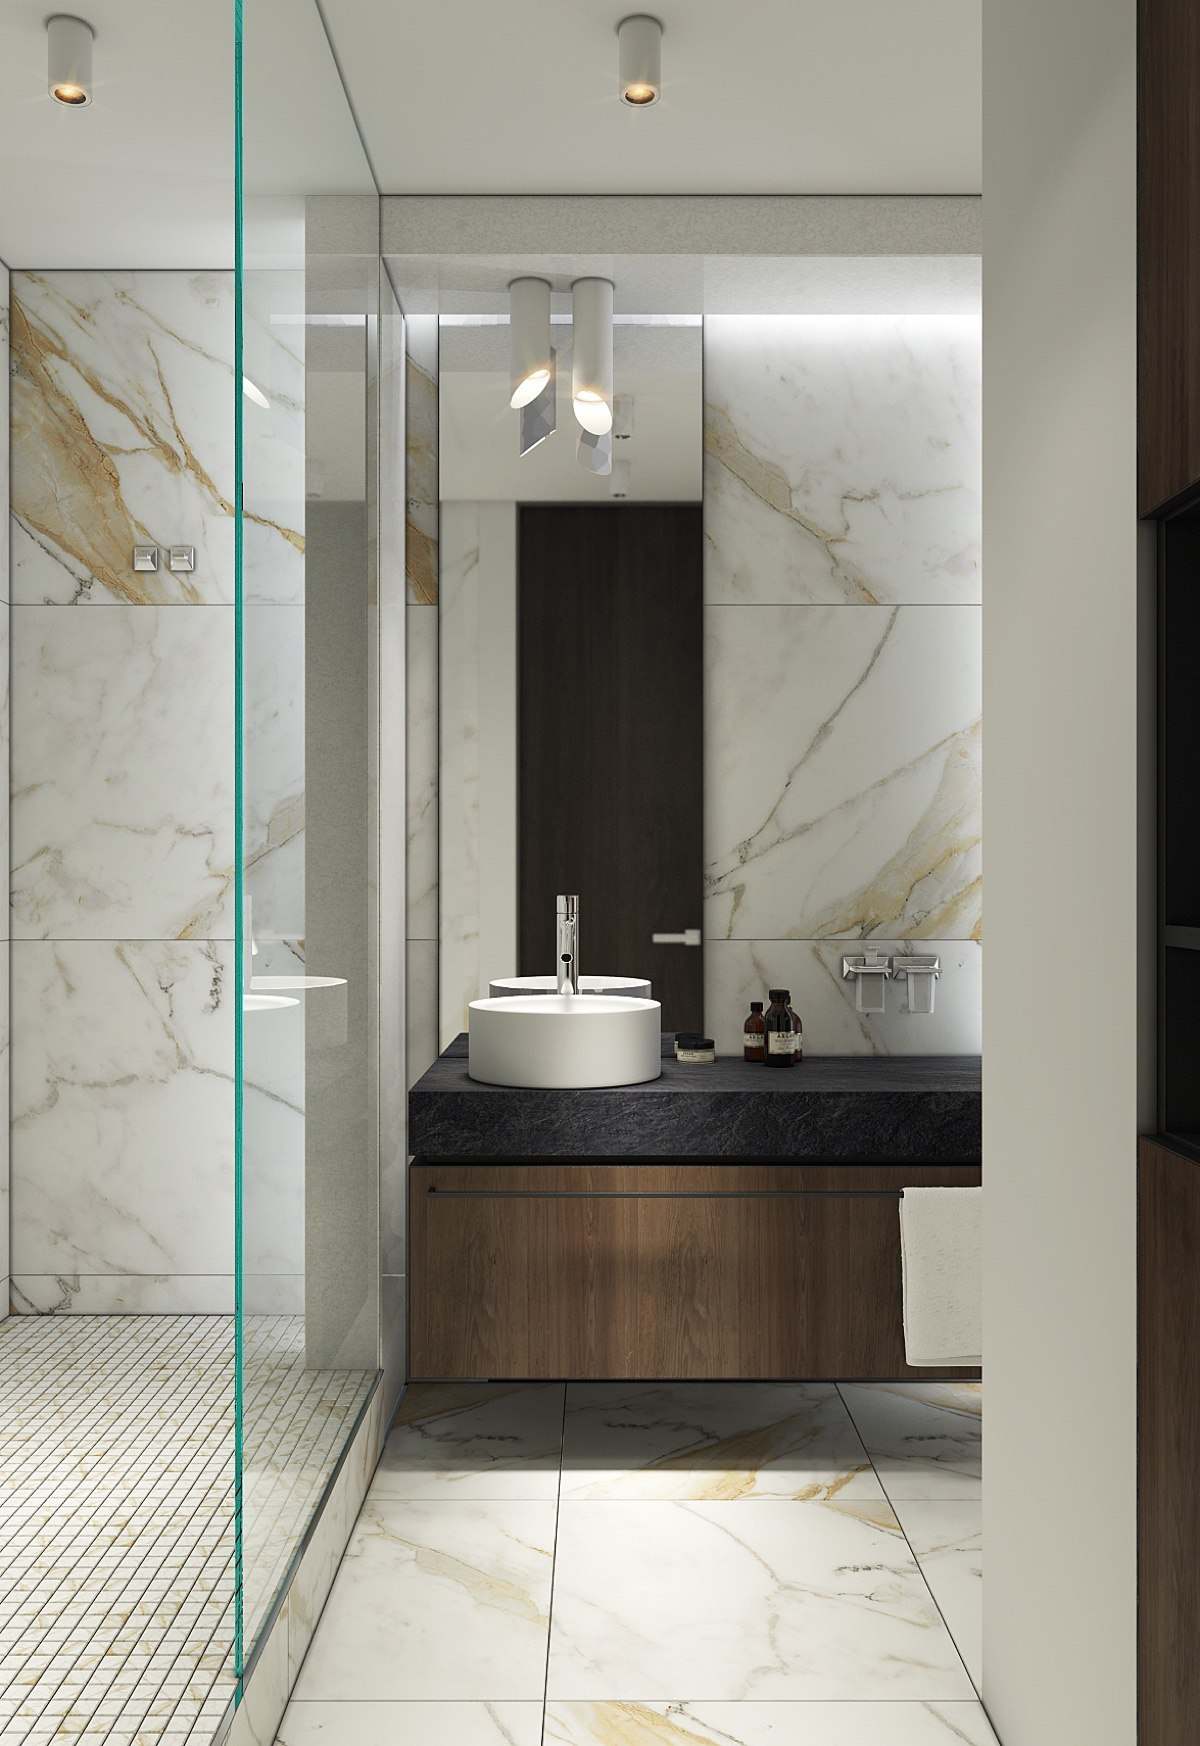 Elongated Bathroom Long Glass And Mirror Panels - Spacious looking one bedroom apartment with dark wood accents